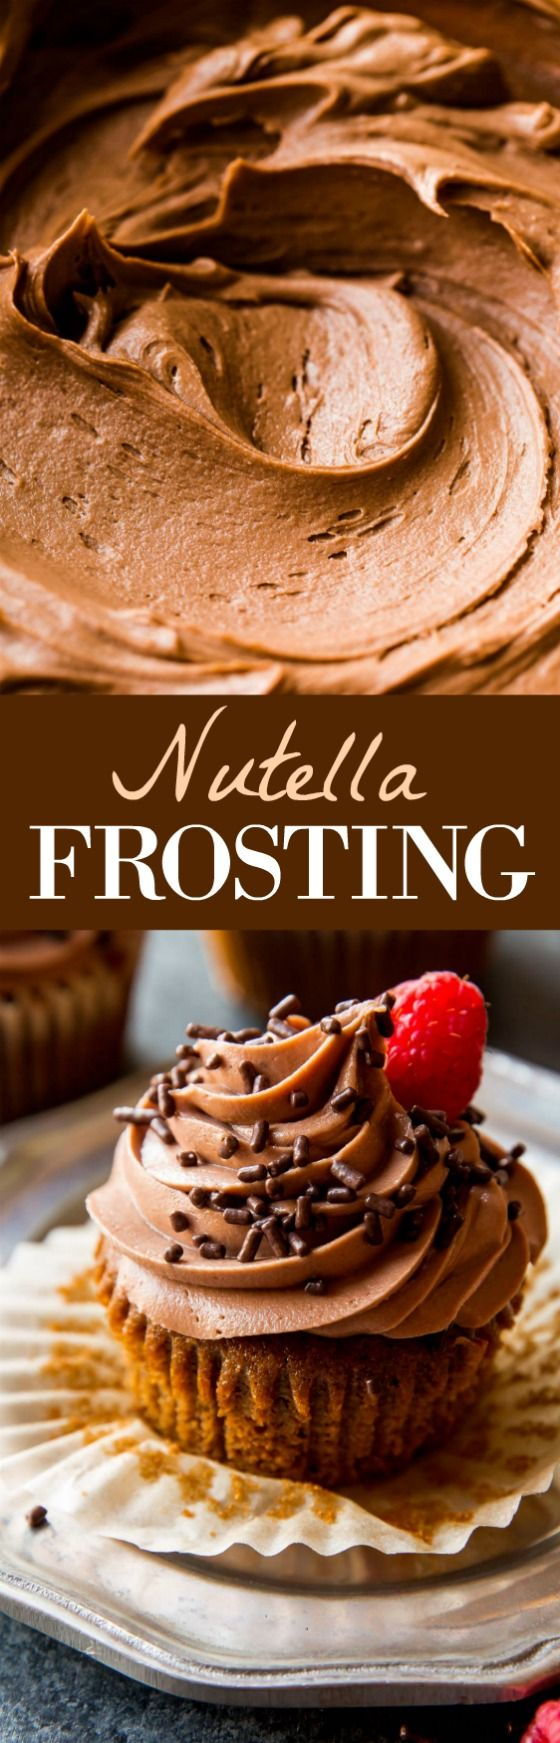 Quick Nutella Icing Recipe The 25 Best Nutella Frosting Ideas On Pinterest Nutella Icing